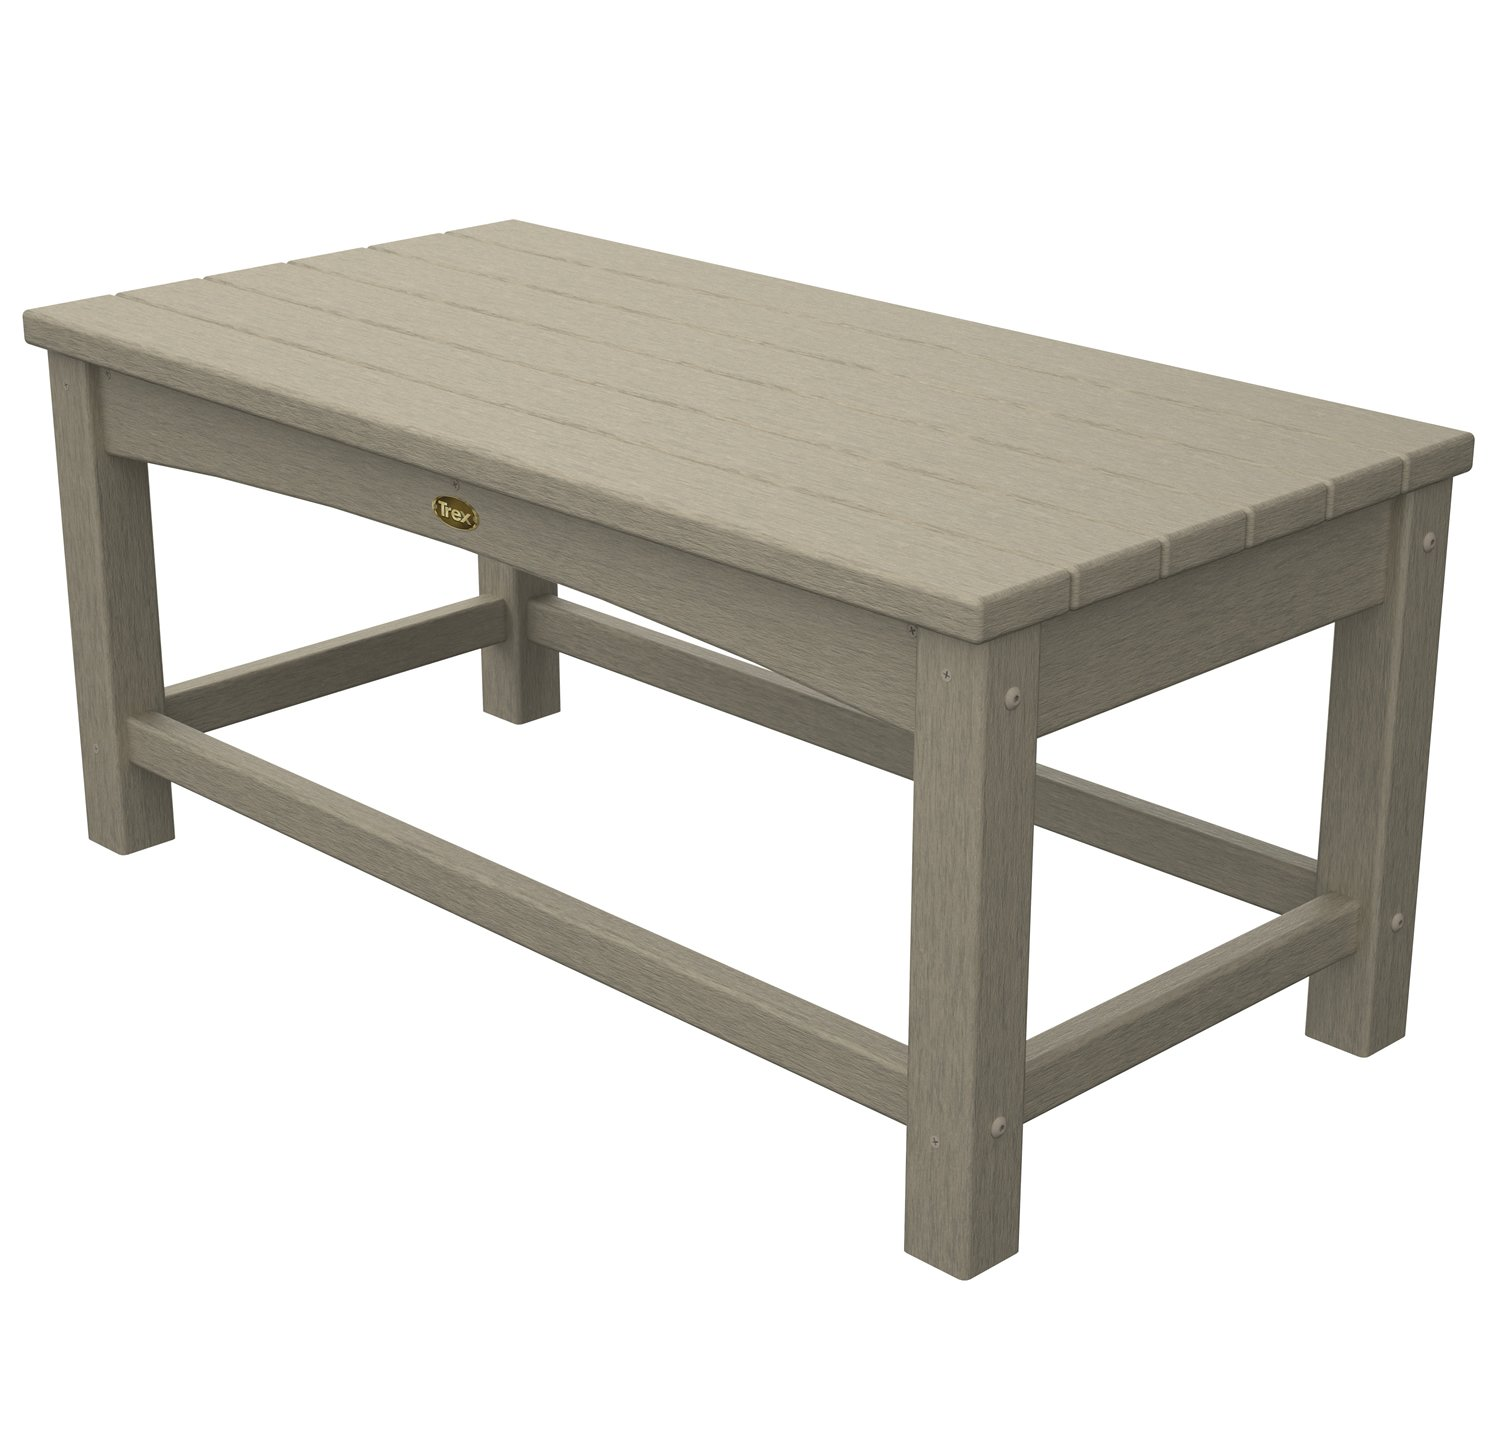 Trex Outdoor Furniture Rockport Club Coffee Table, Sand Castle